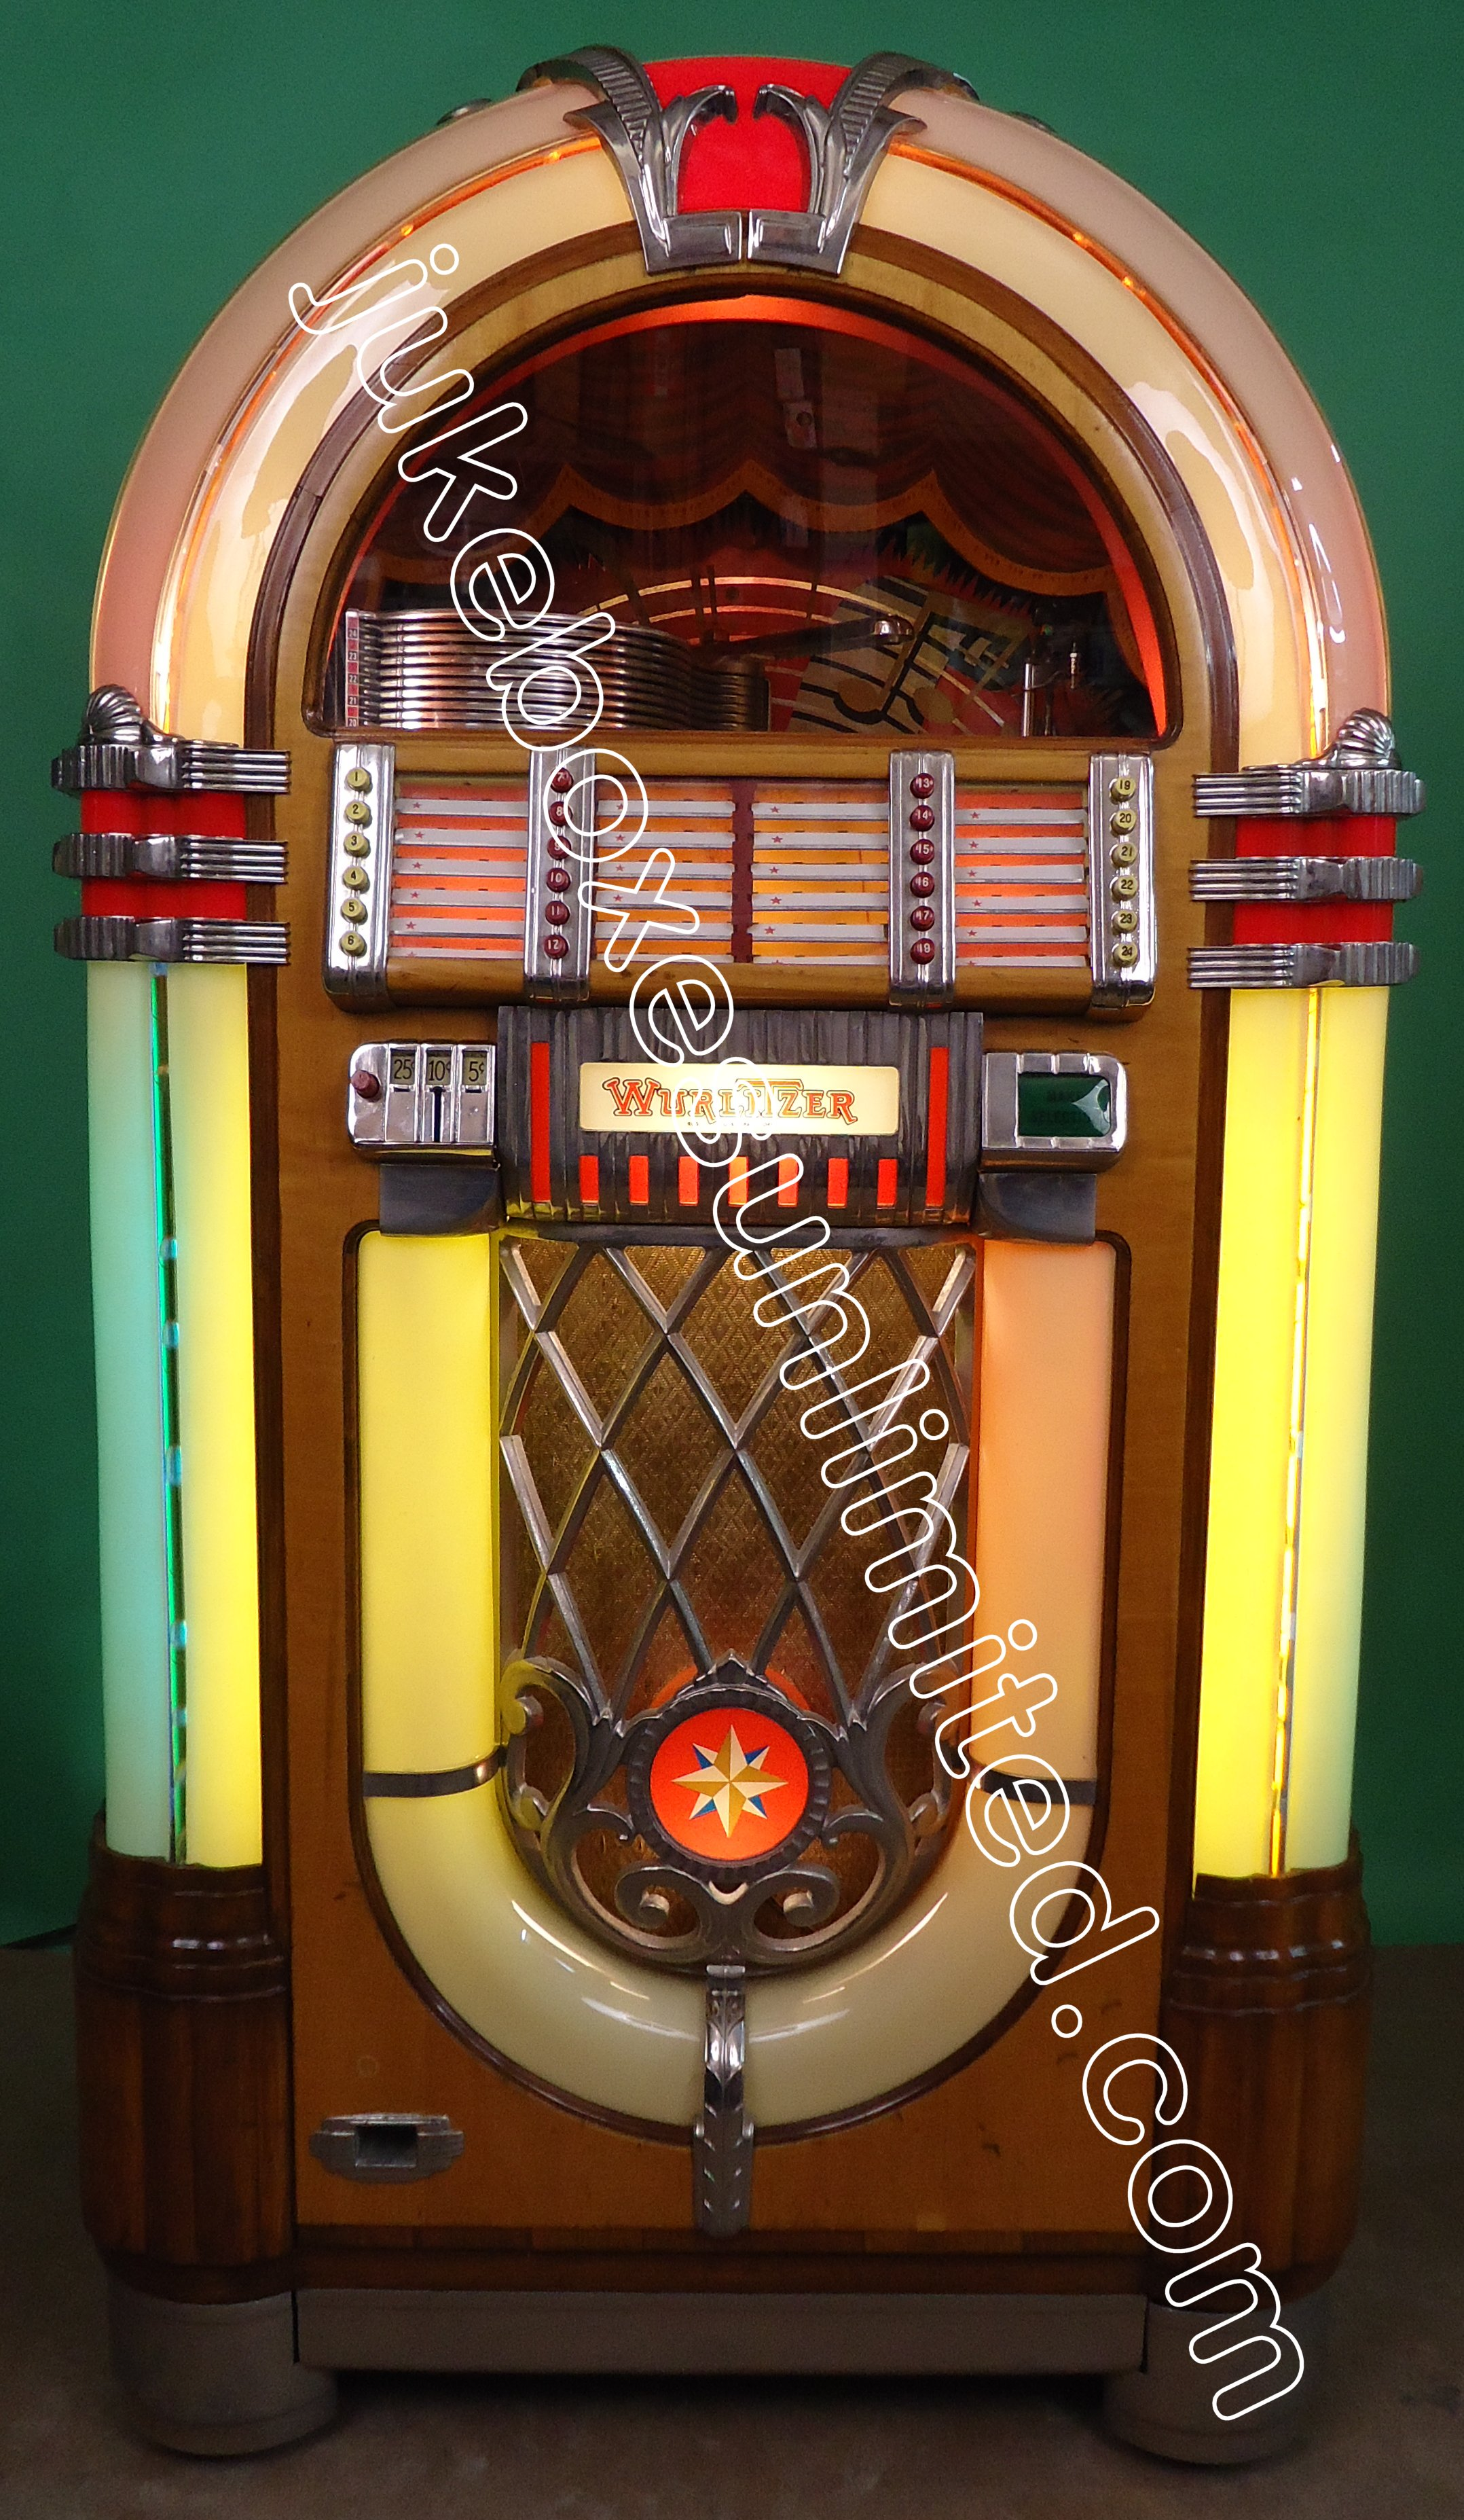 JUKEBOXES UNLIMITED, Los Angeles - Jukeboxes For Sale